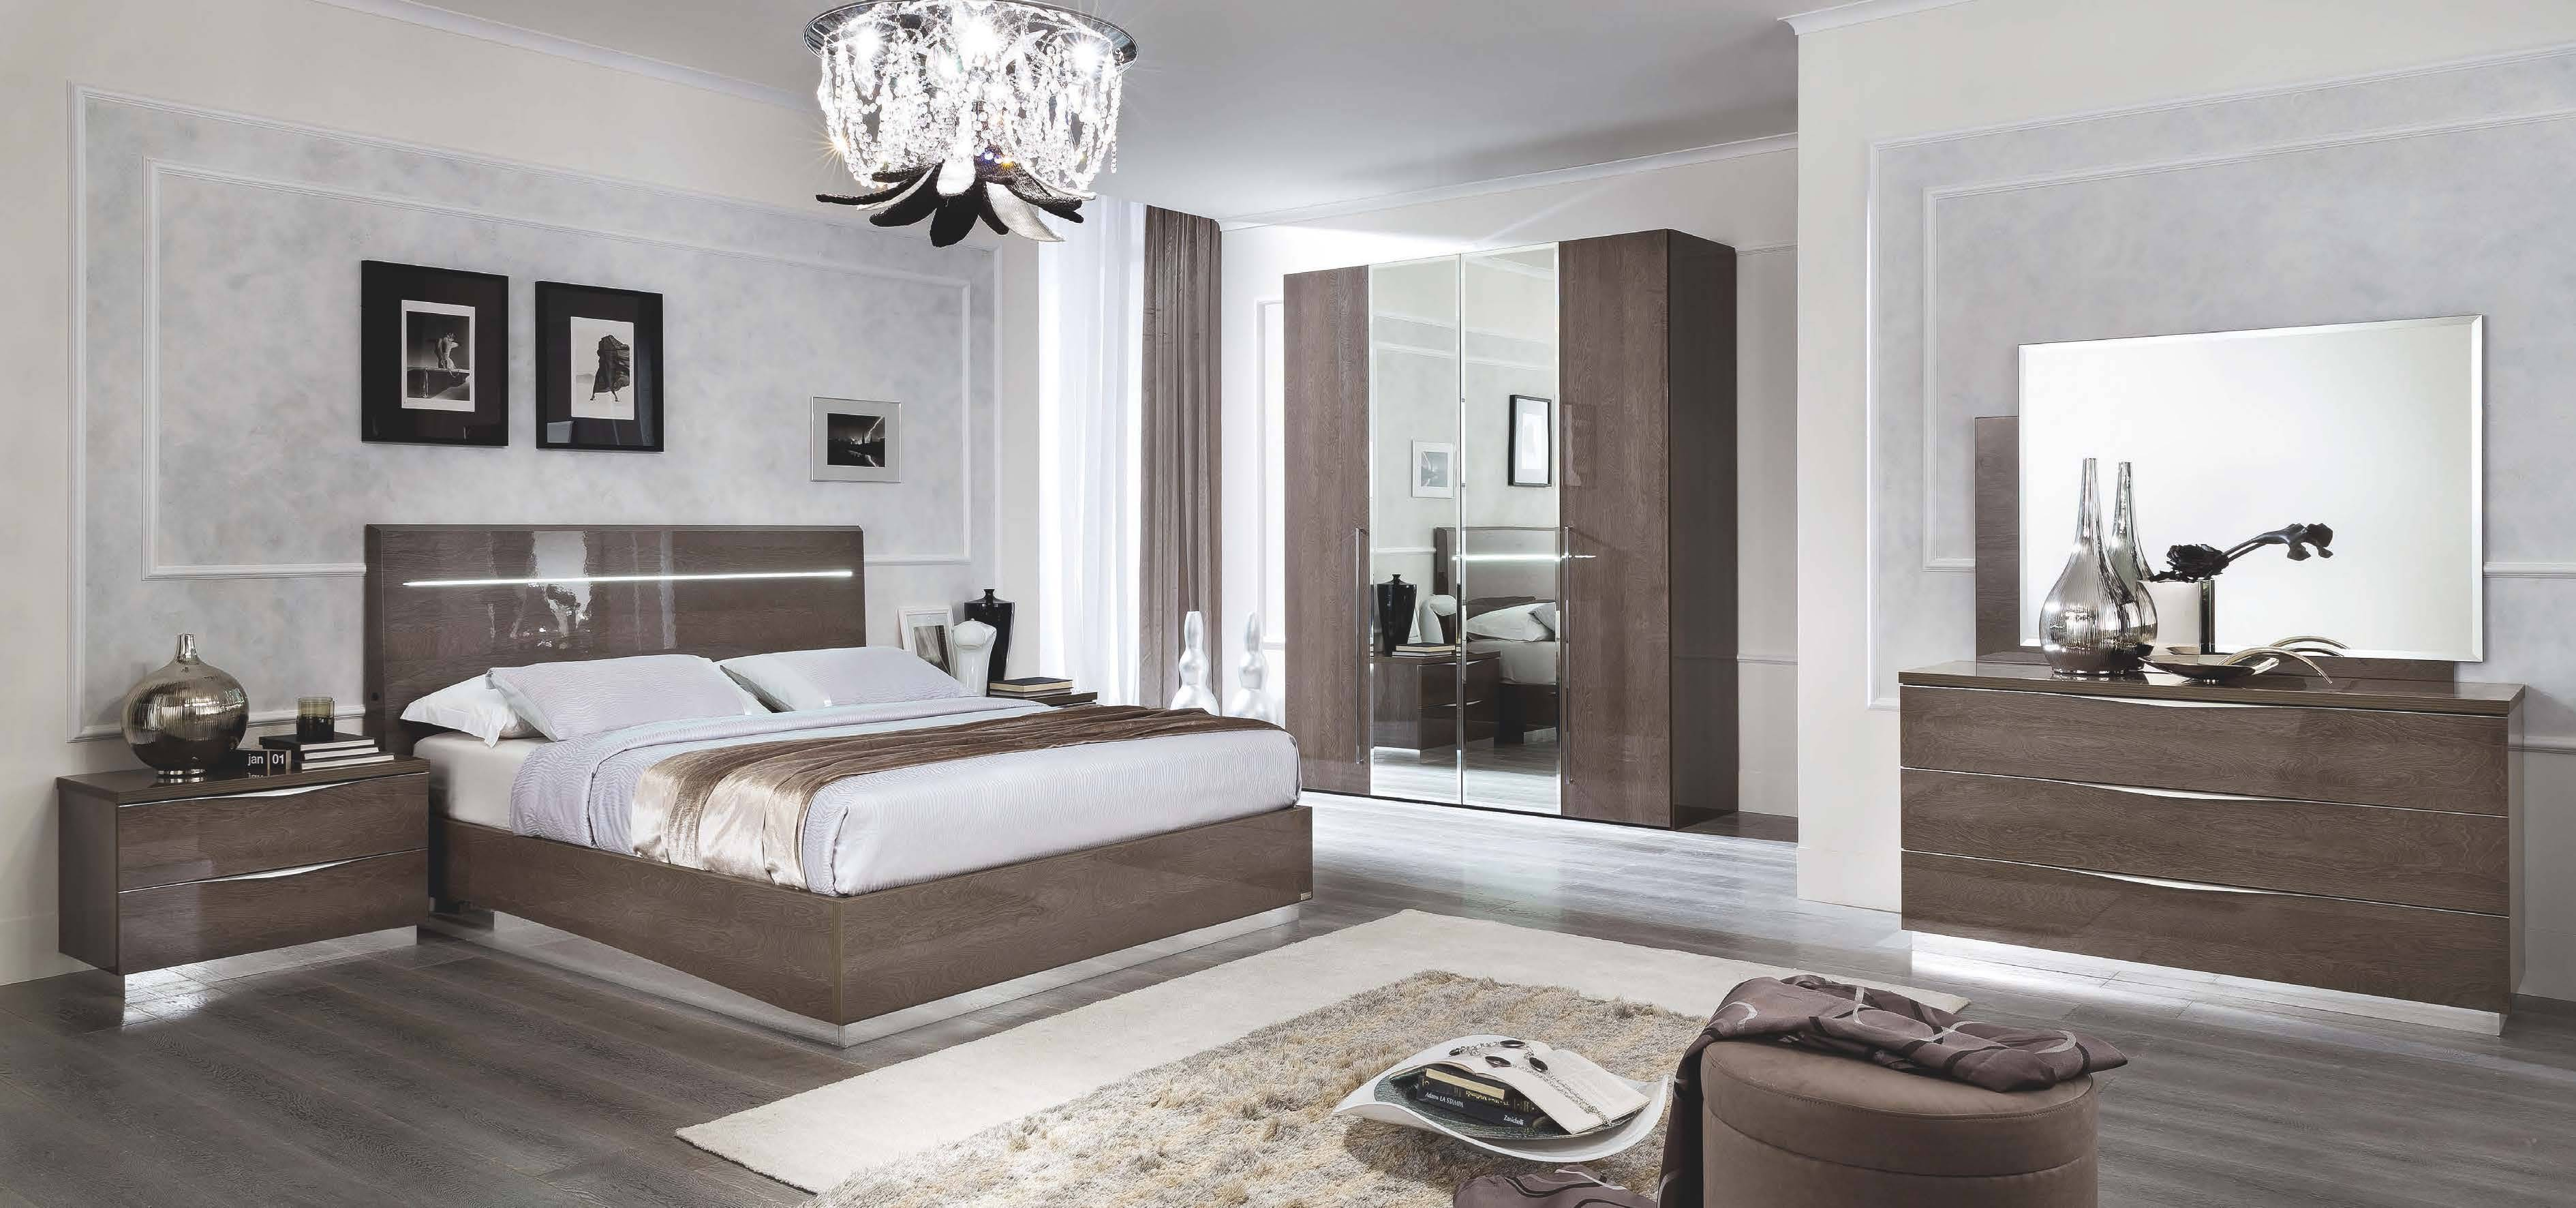 Made in italy quality high end bedroom sets san jose for Italian bedroom furniture